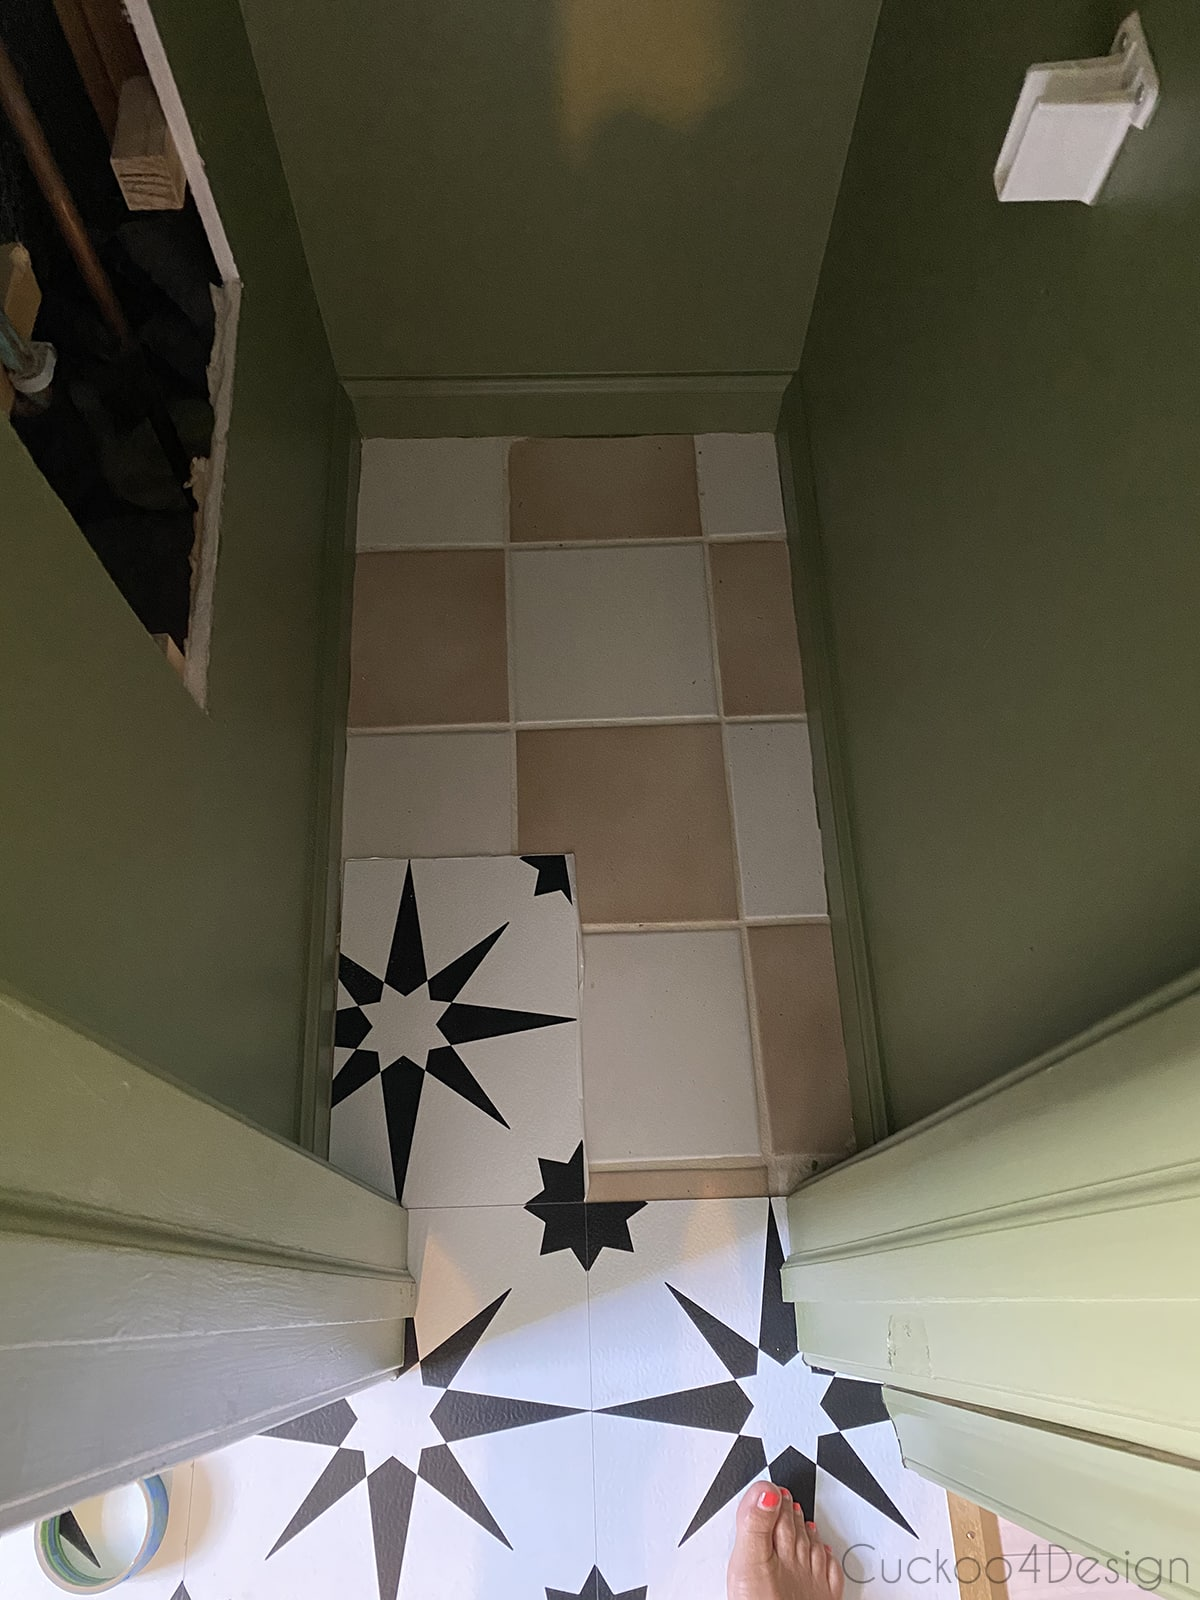 fitting cheap peel and stick floor tile inside the letterbox closet